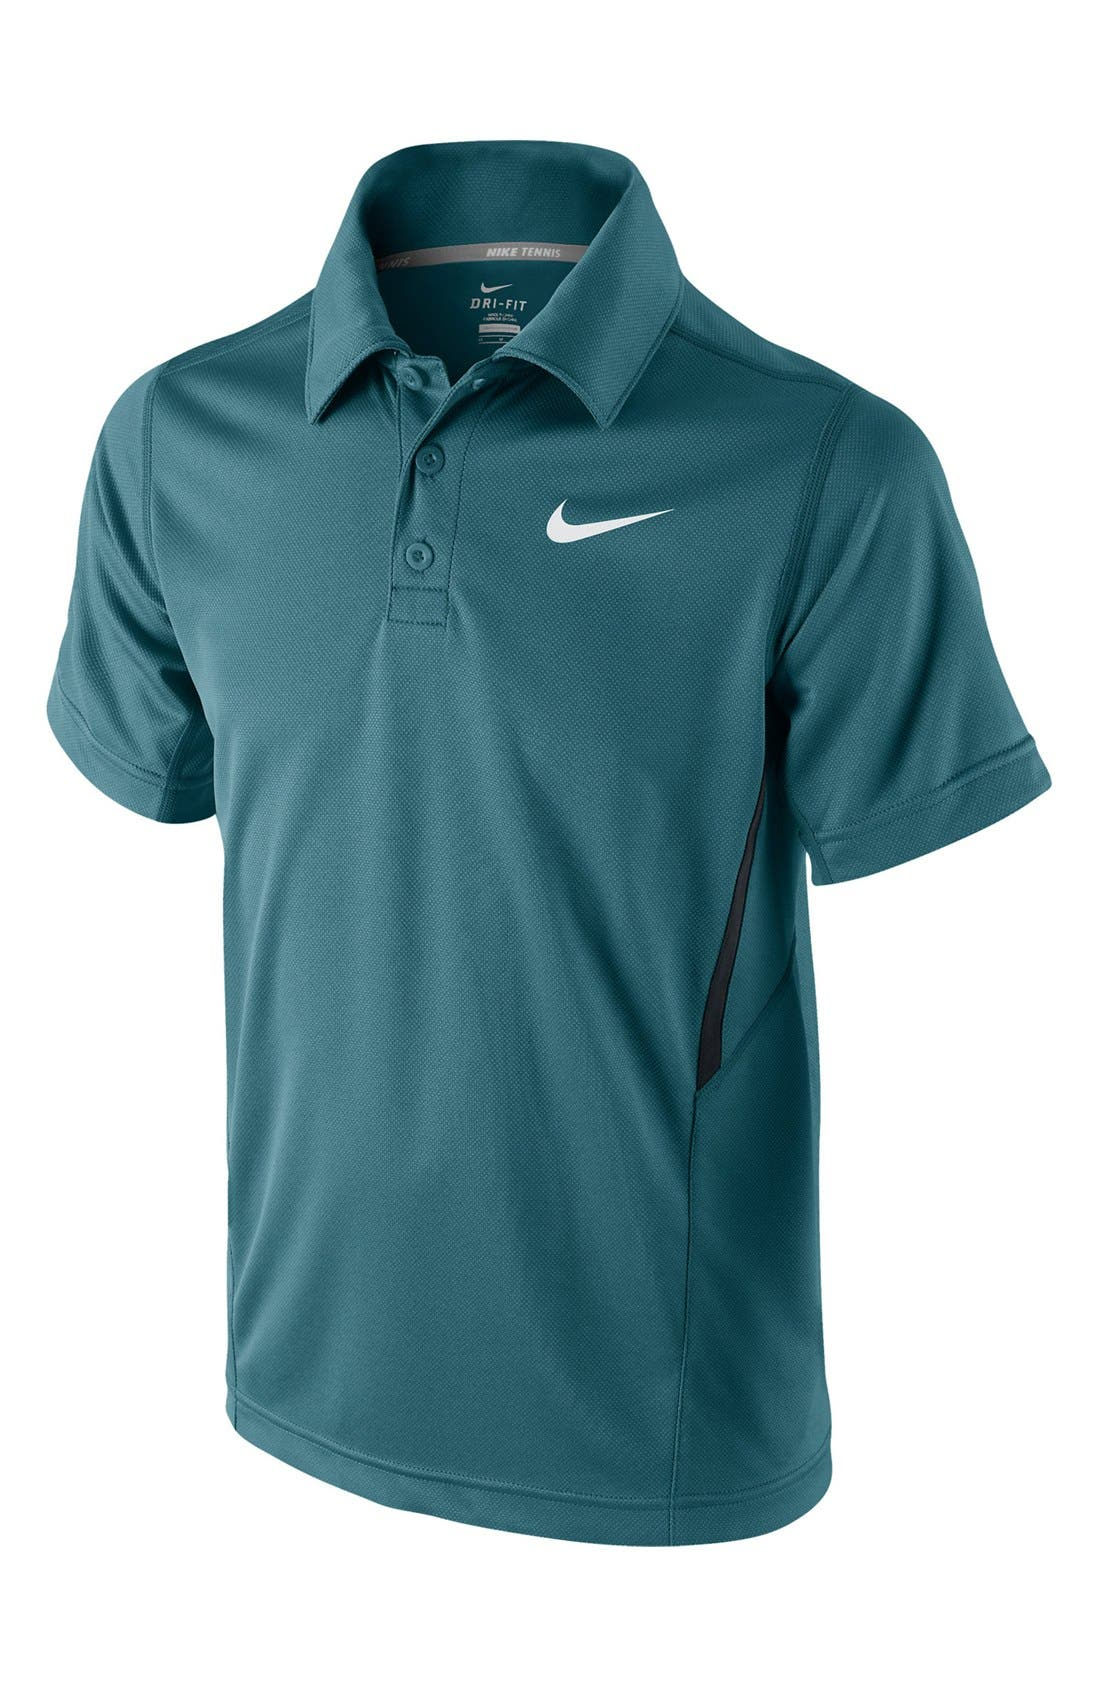 Main Image - Nike 'Boarder' Tennis Polo (Big Boys)